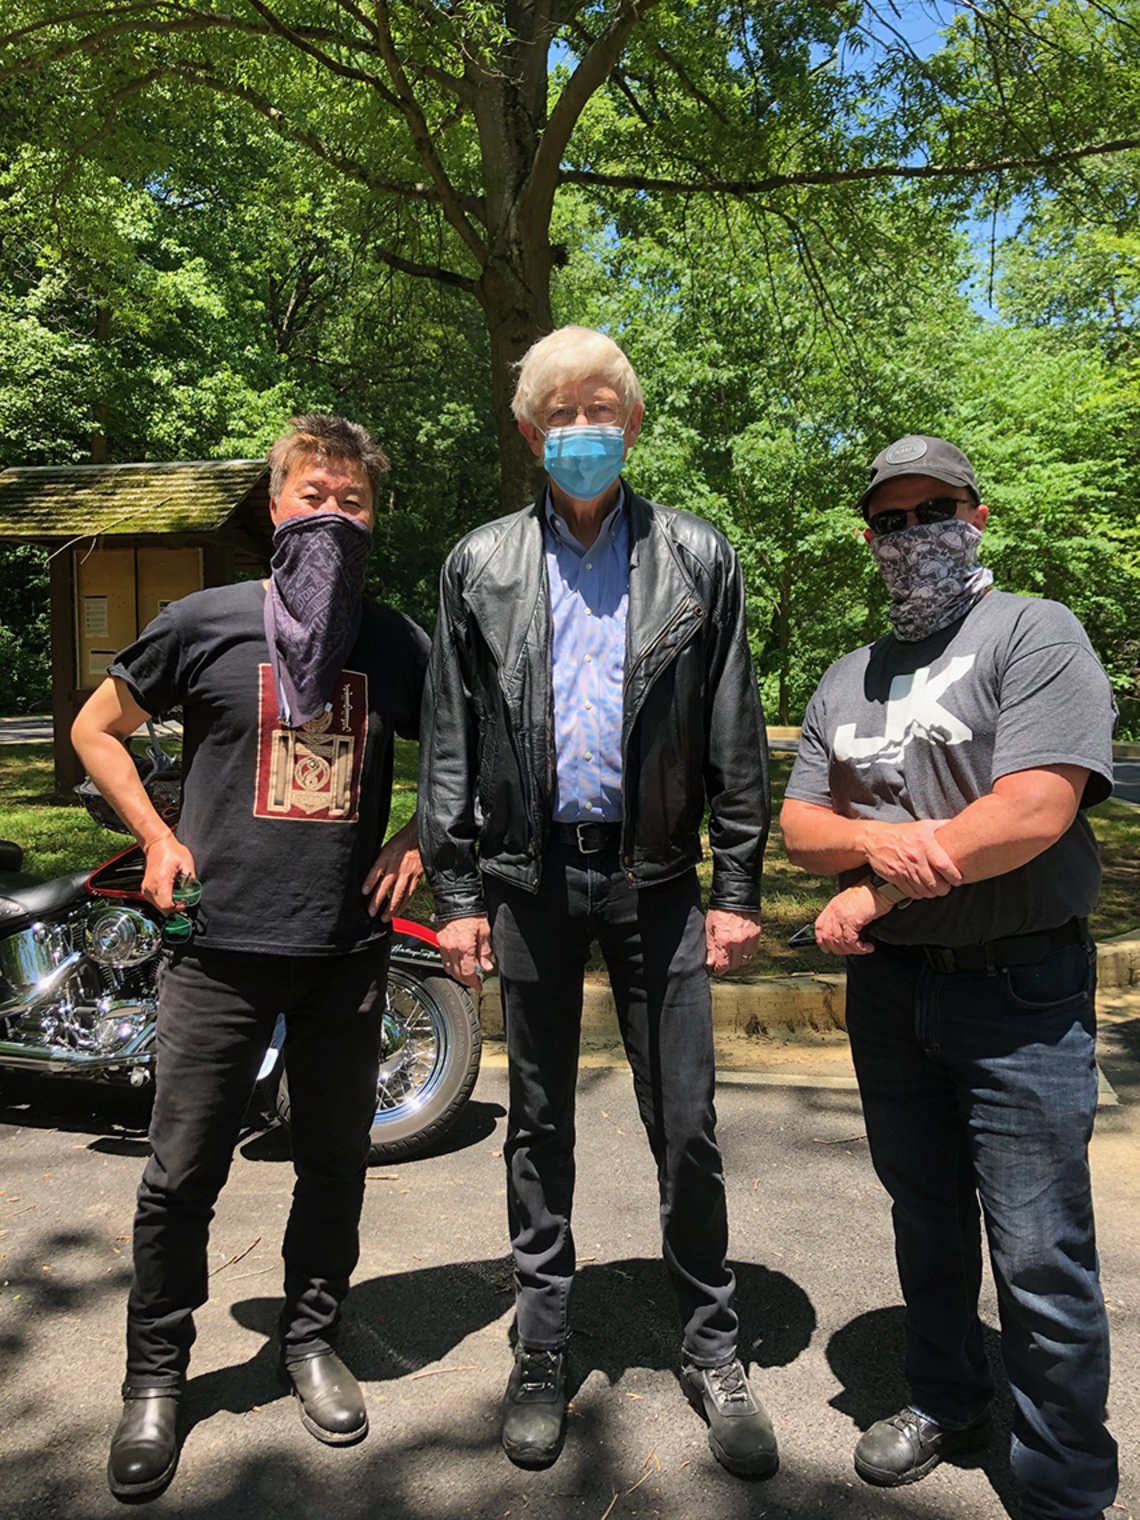 Three NIH'ers get ready to ride motorcycles.